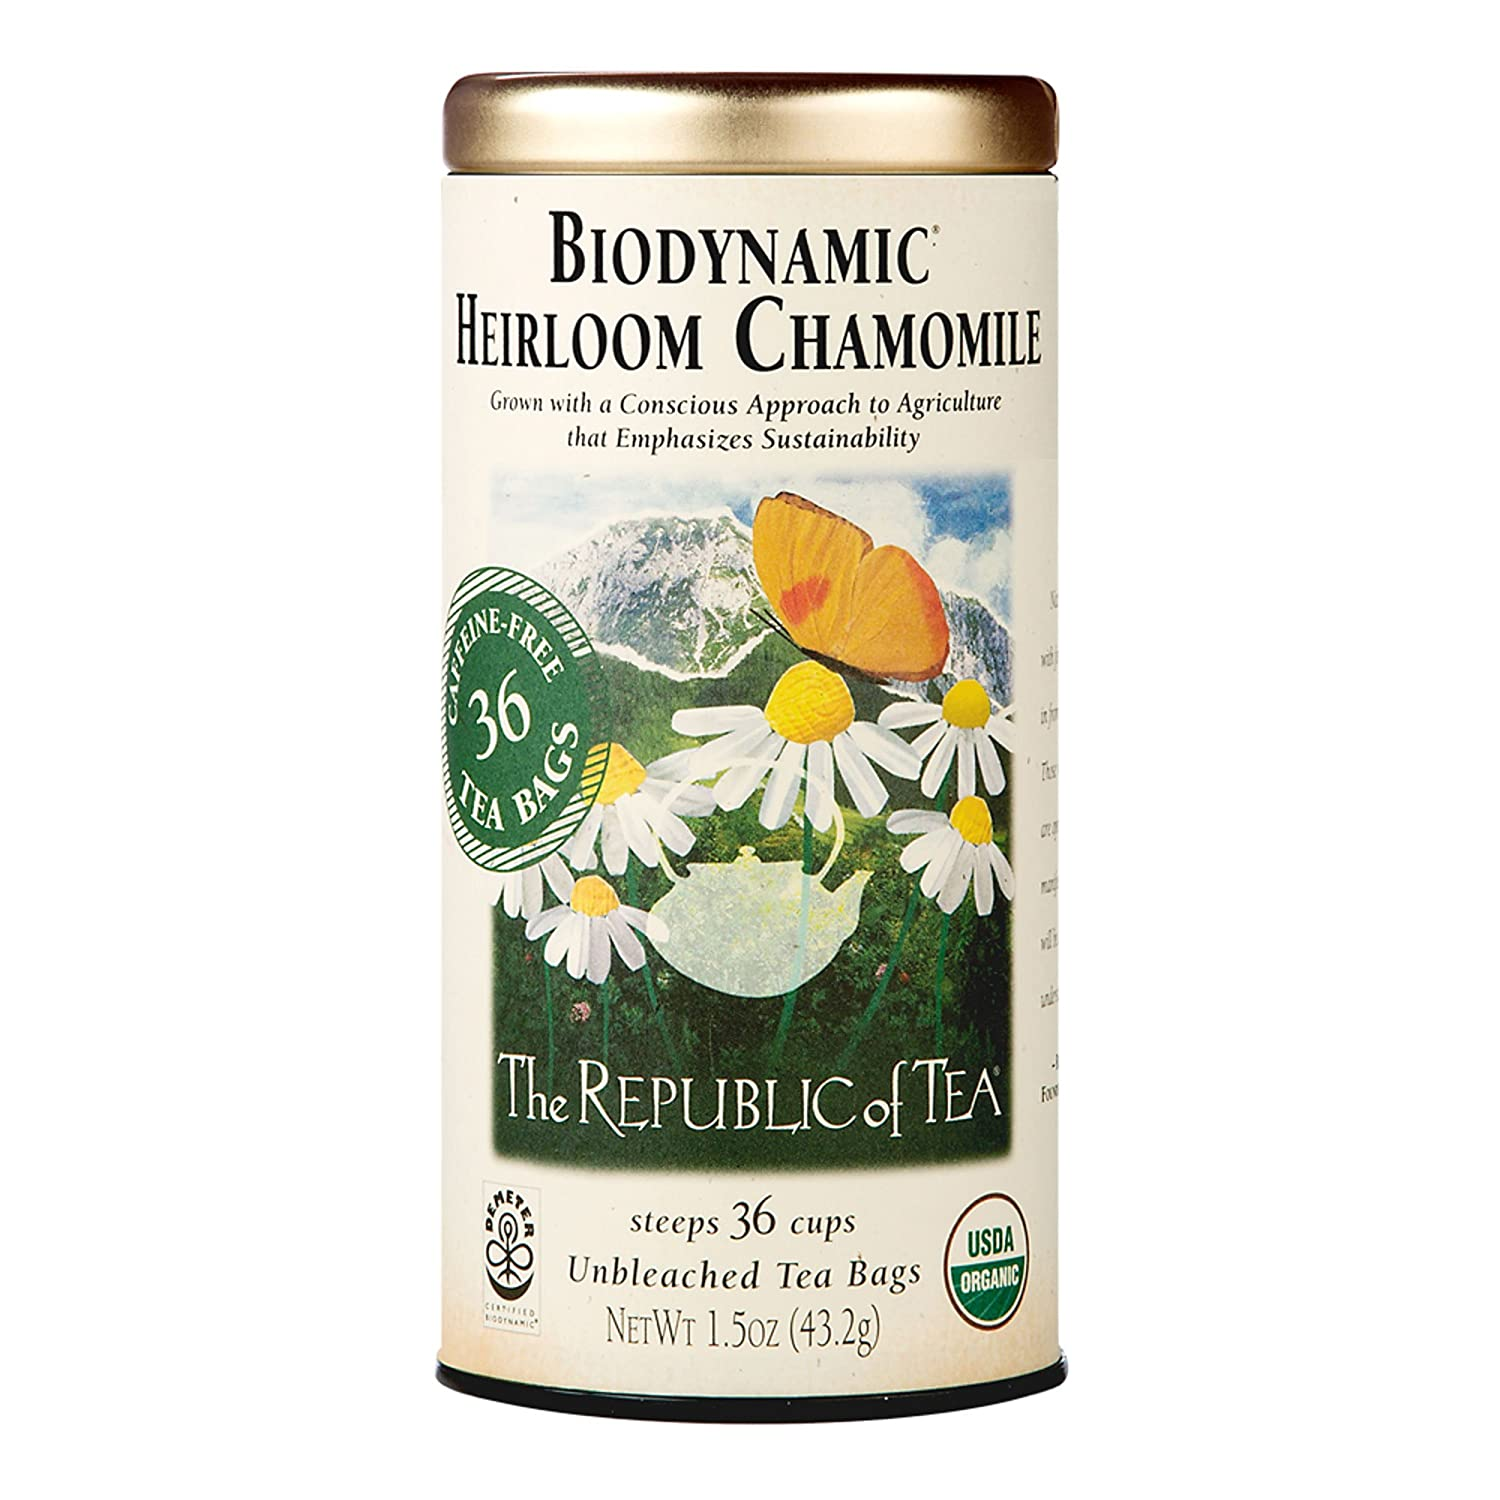 The Republic of Tea Biodynamic Heirloom Chamomile Herbal Tea, 36 Tea Bag Tin